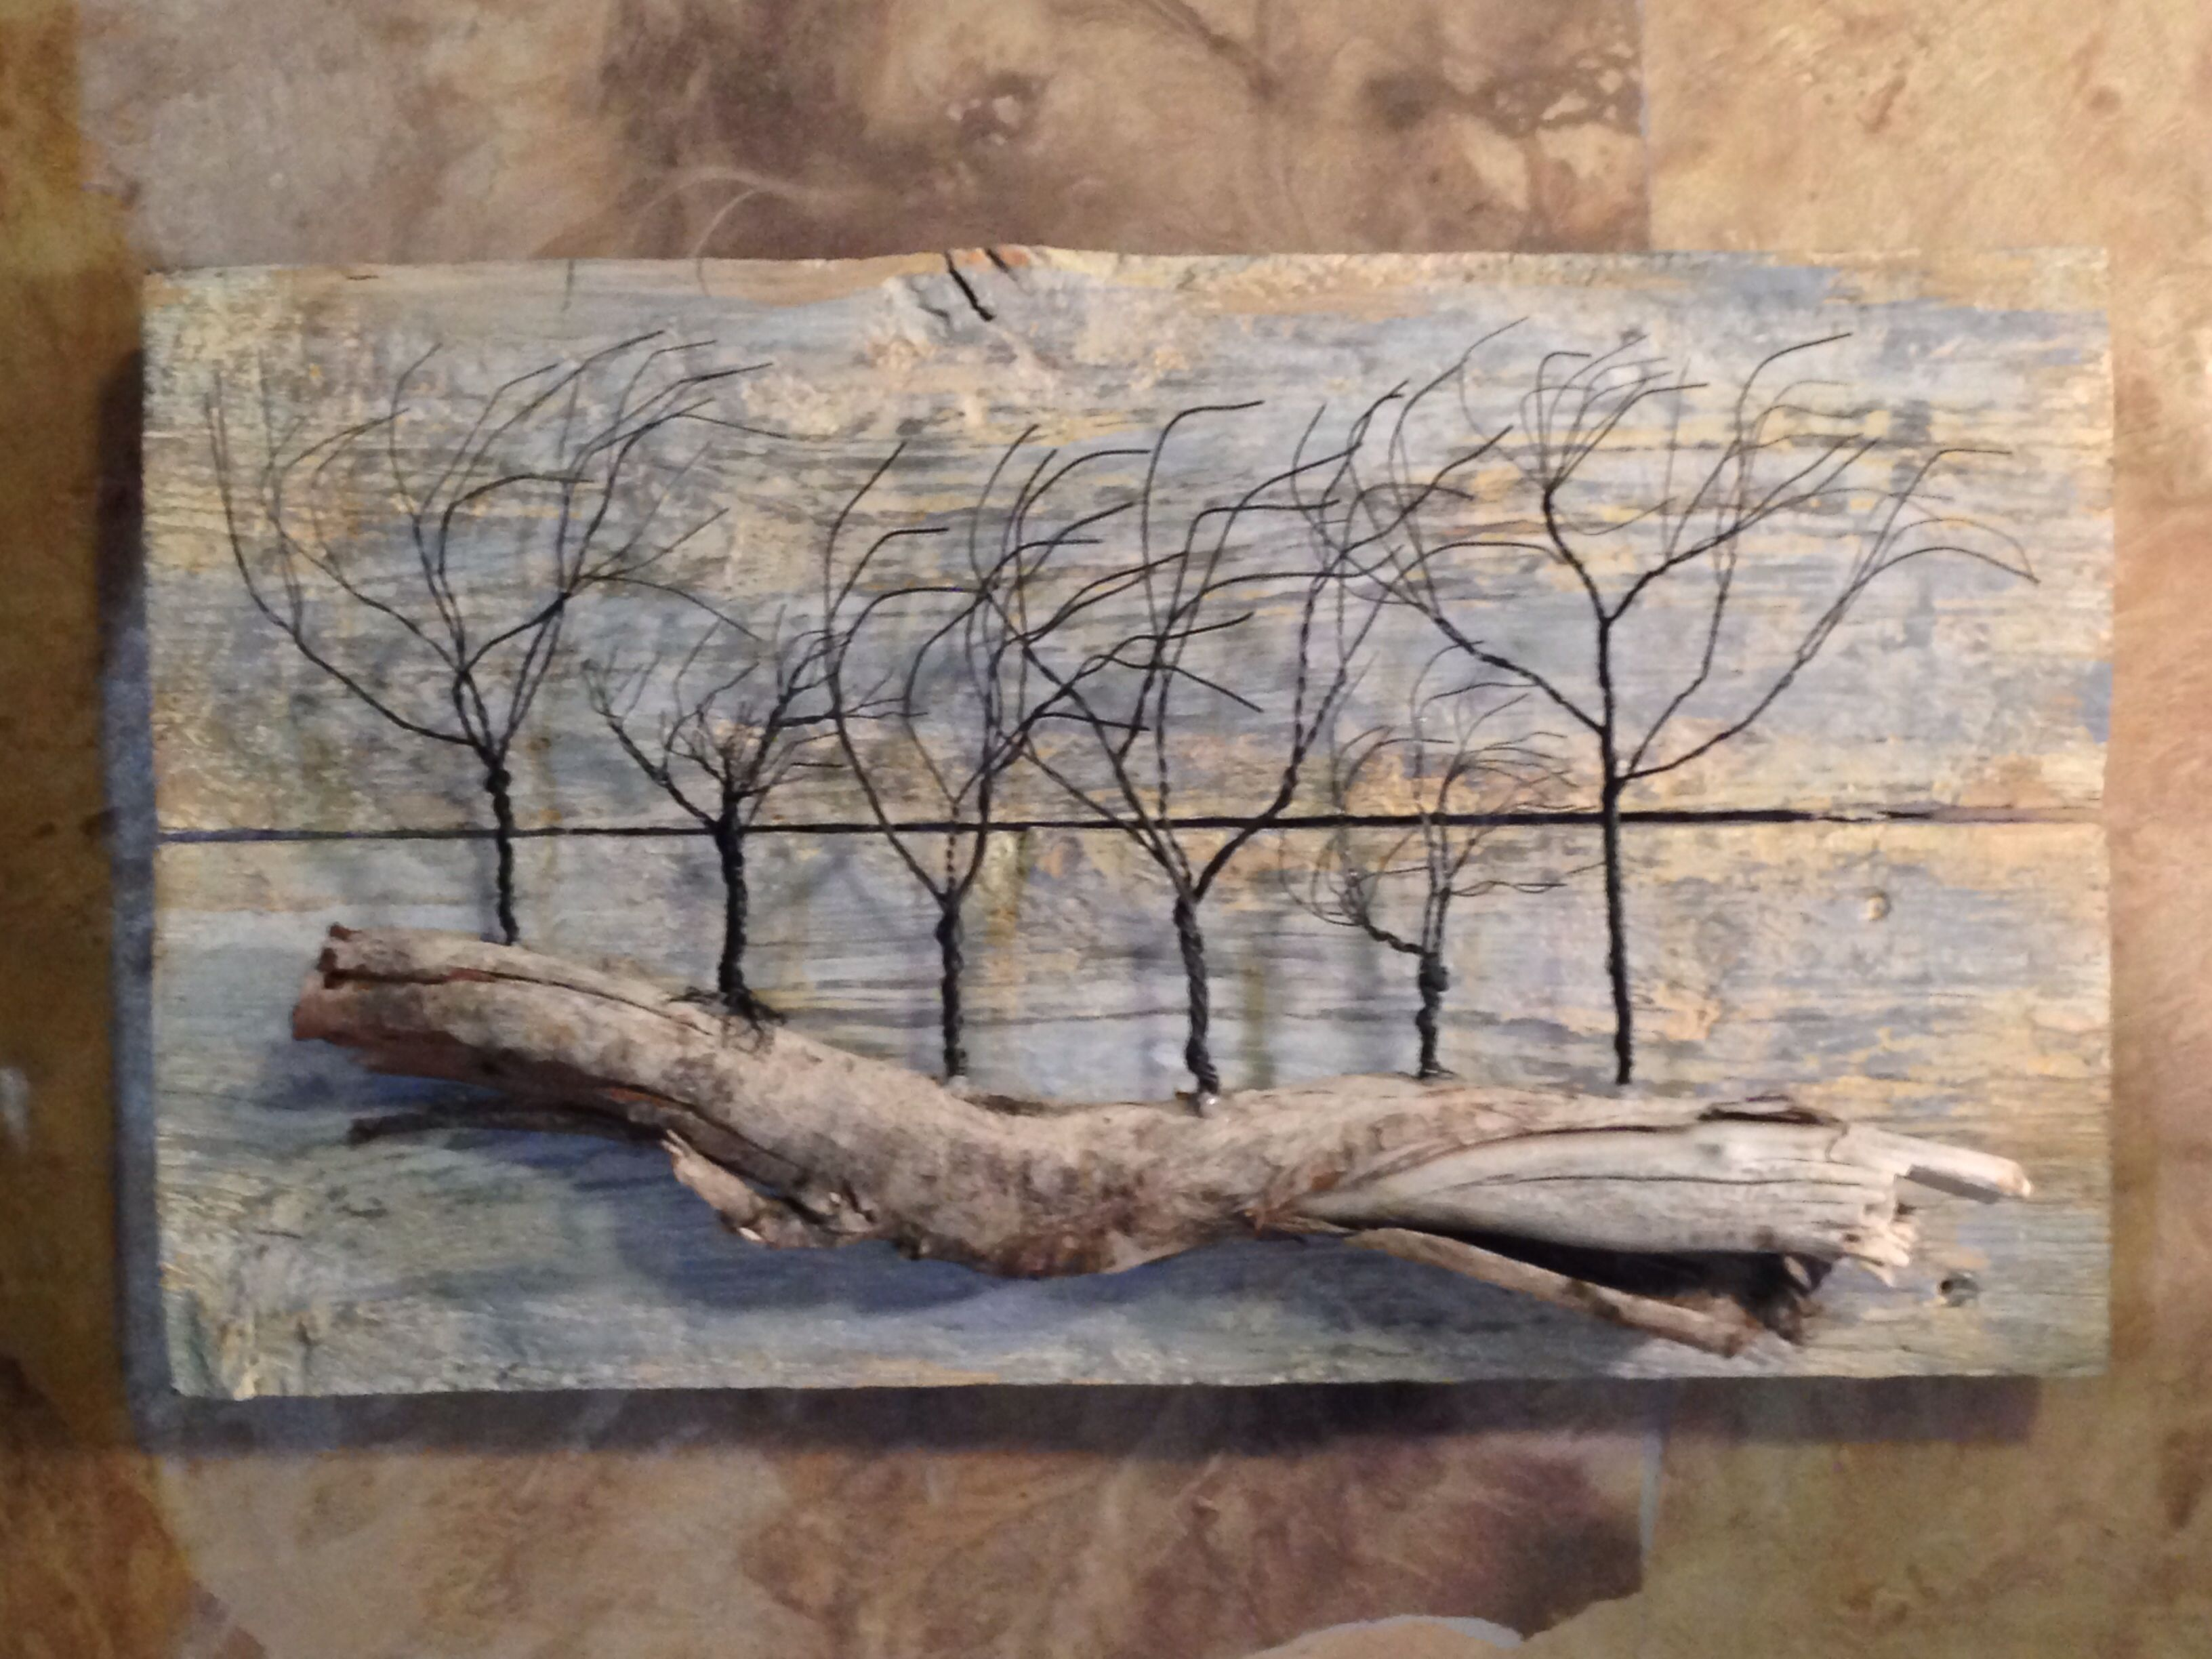 1000 ideas about drift wood on pinterest driftwood art for How to work with driftwood